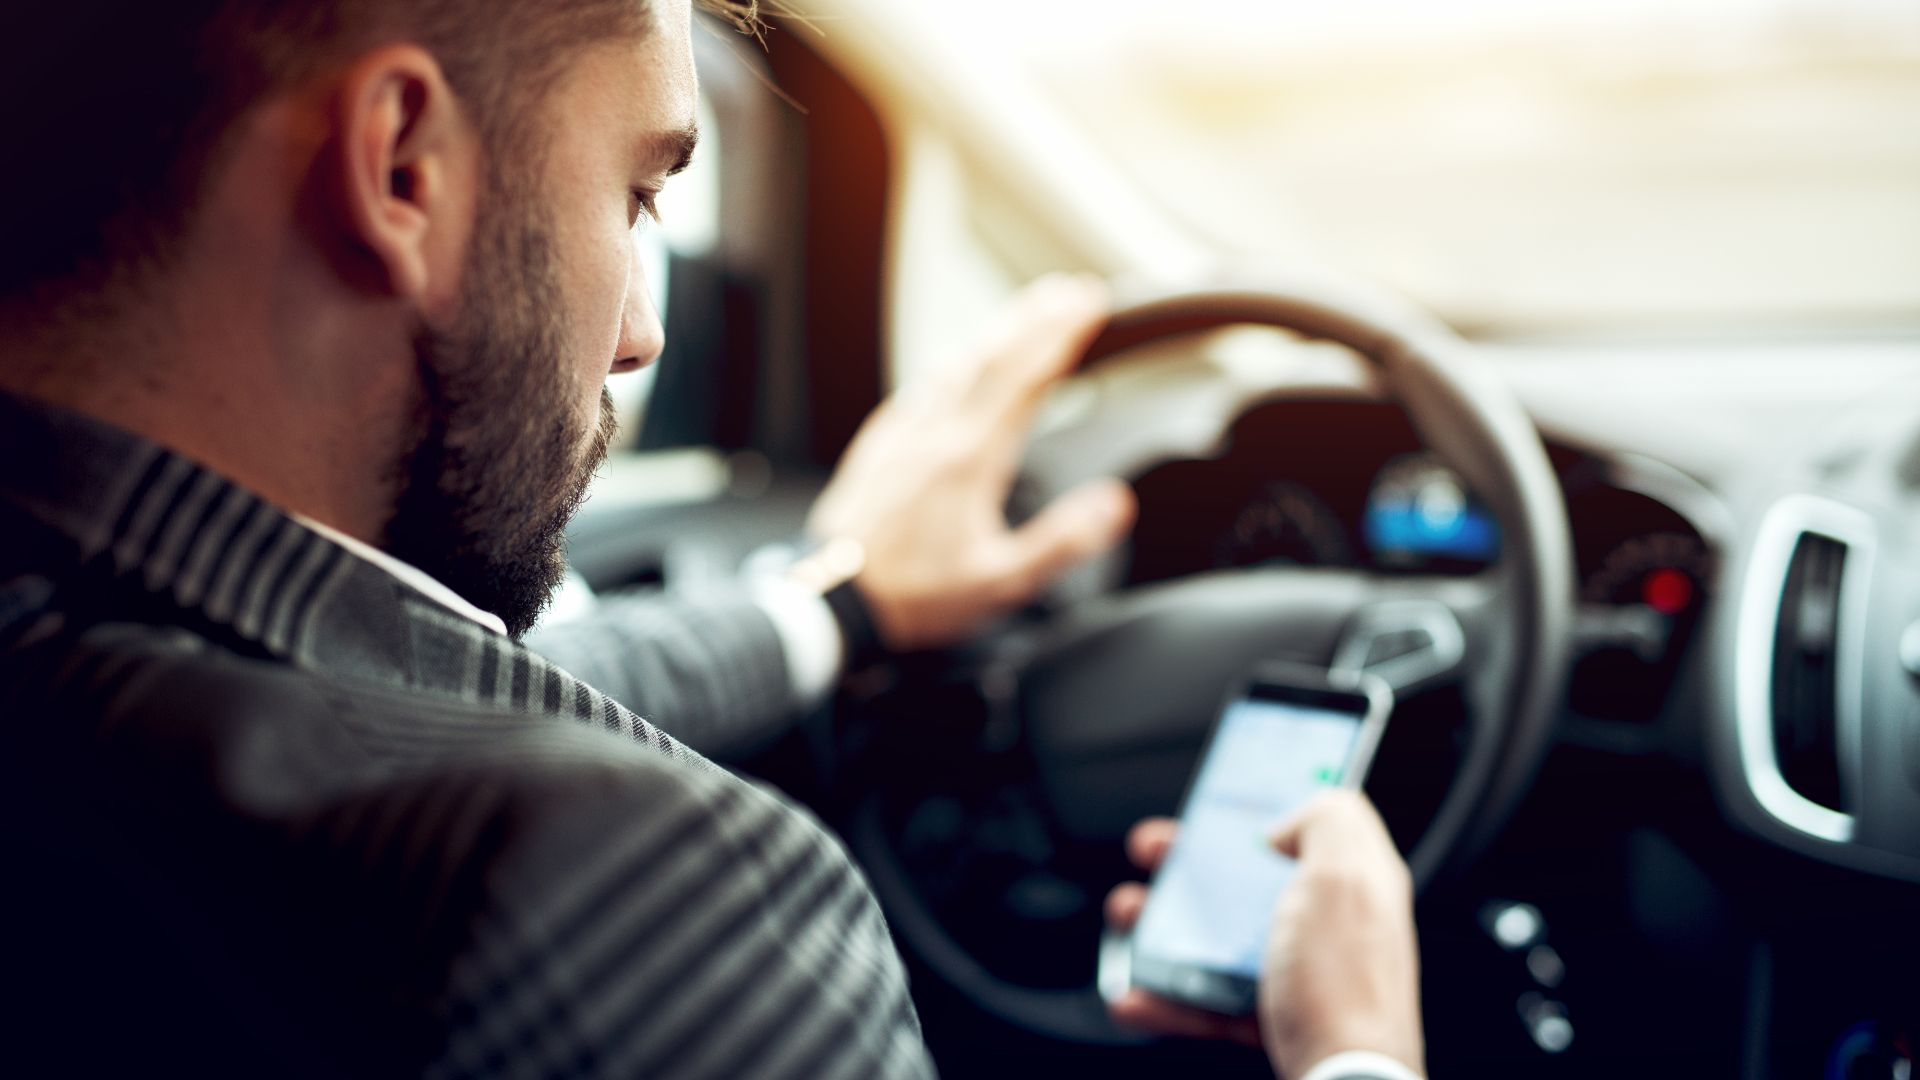 mobile phone use behind the wheel